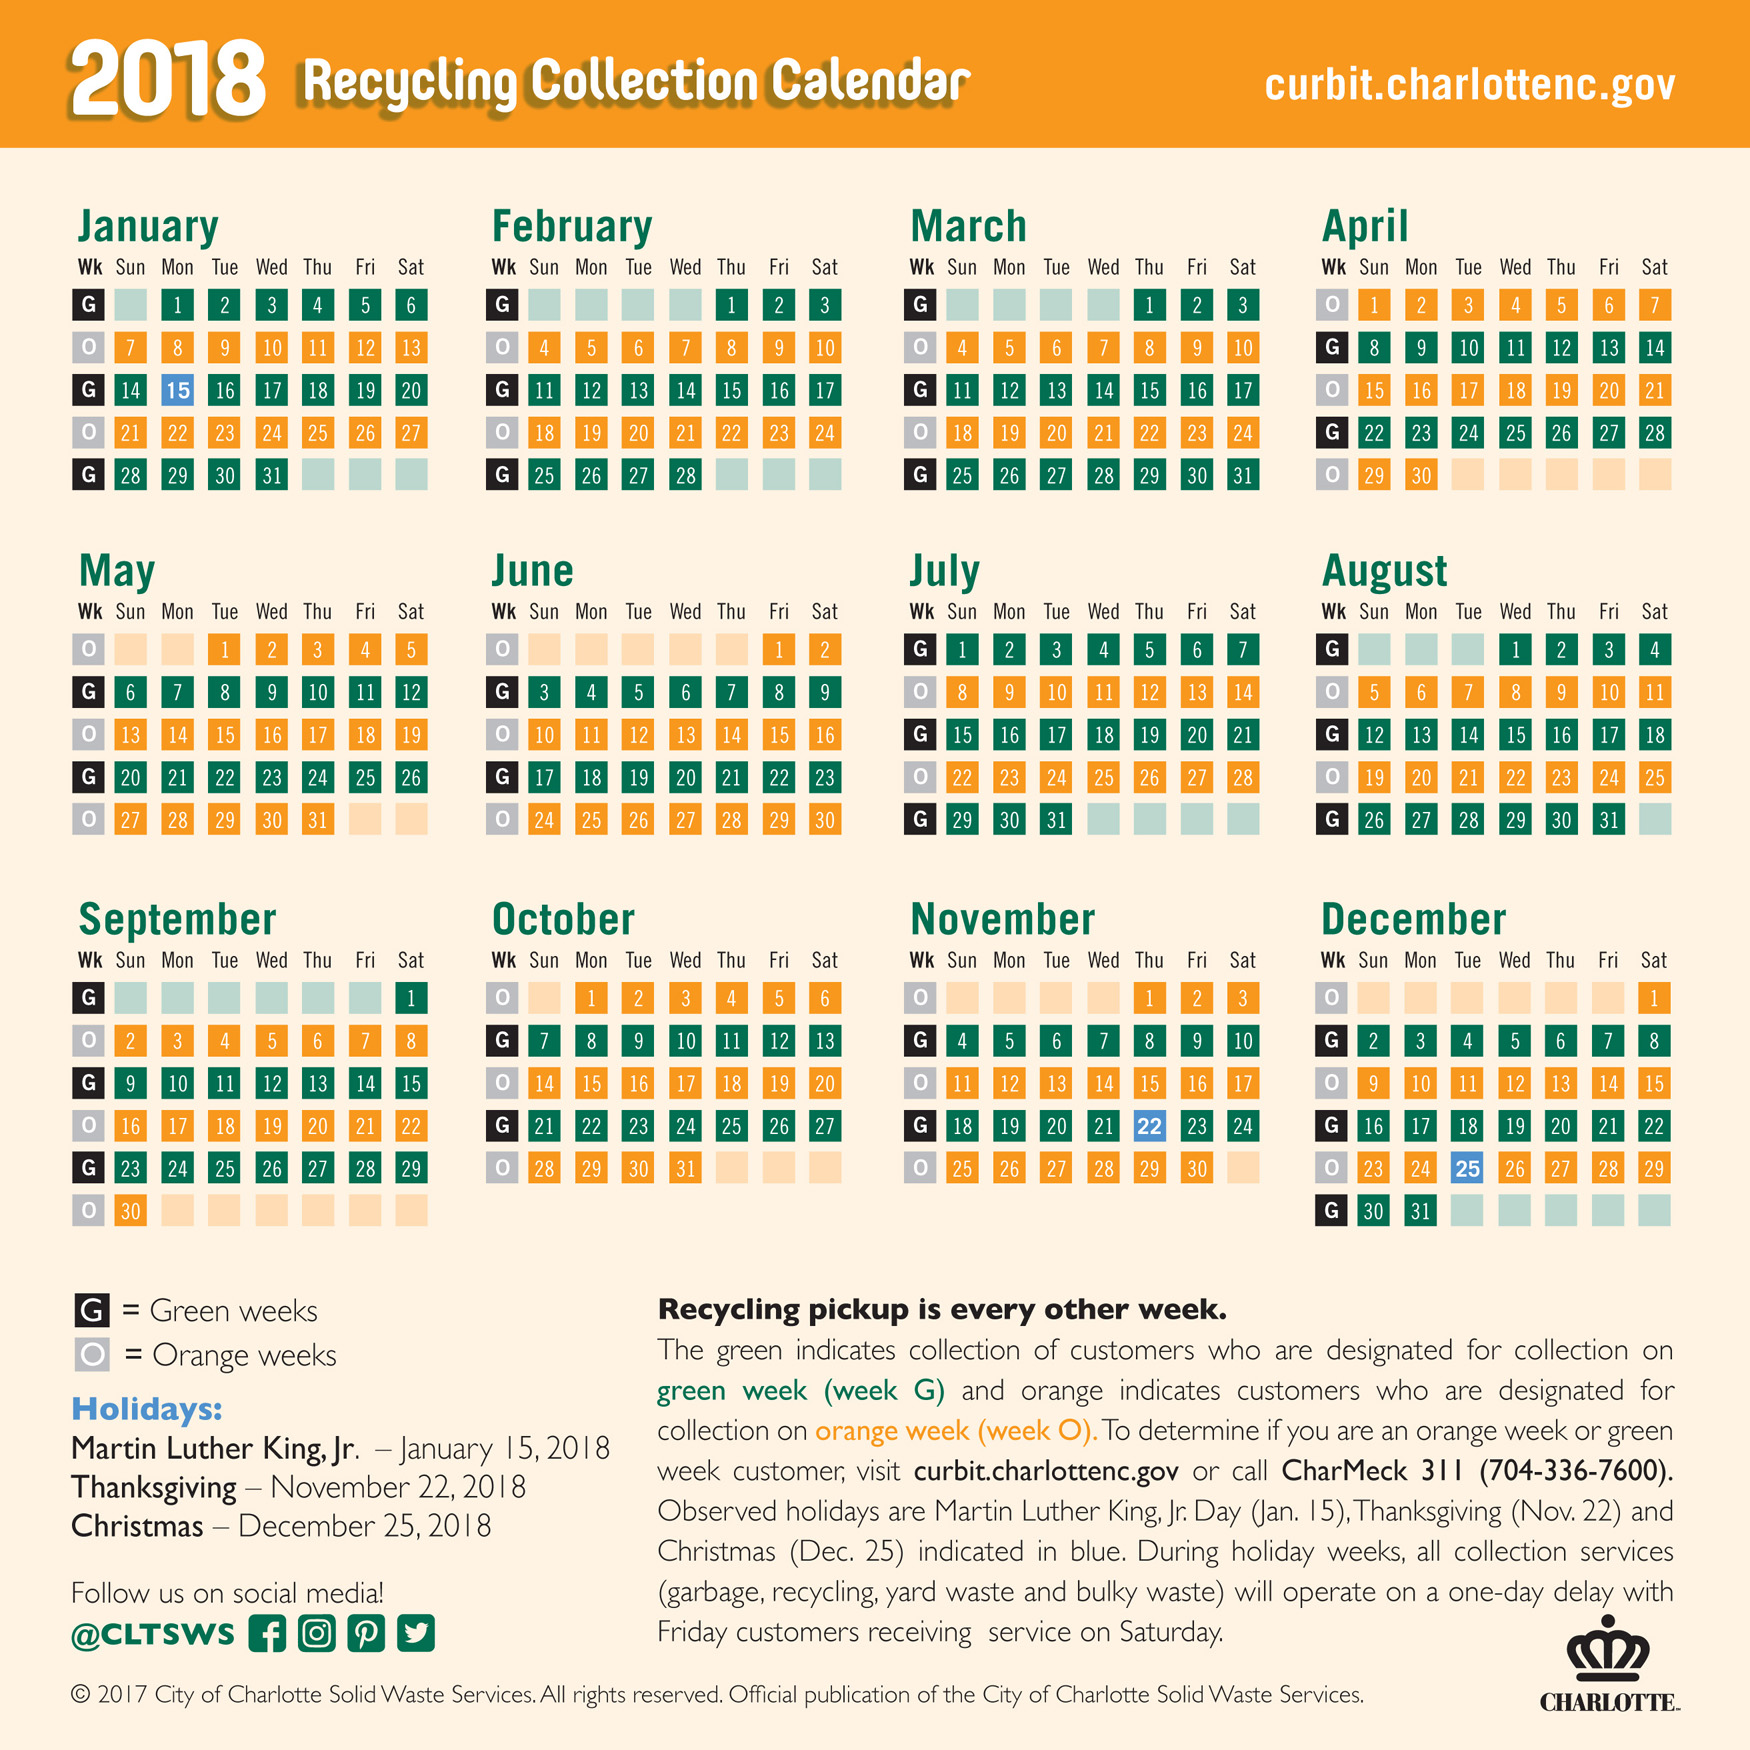 COC Recycle It Recycling Calendar 2018.jpg